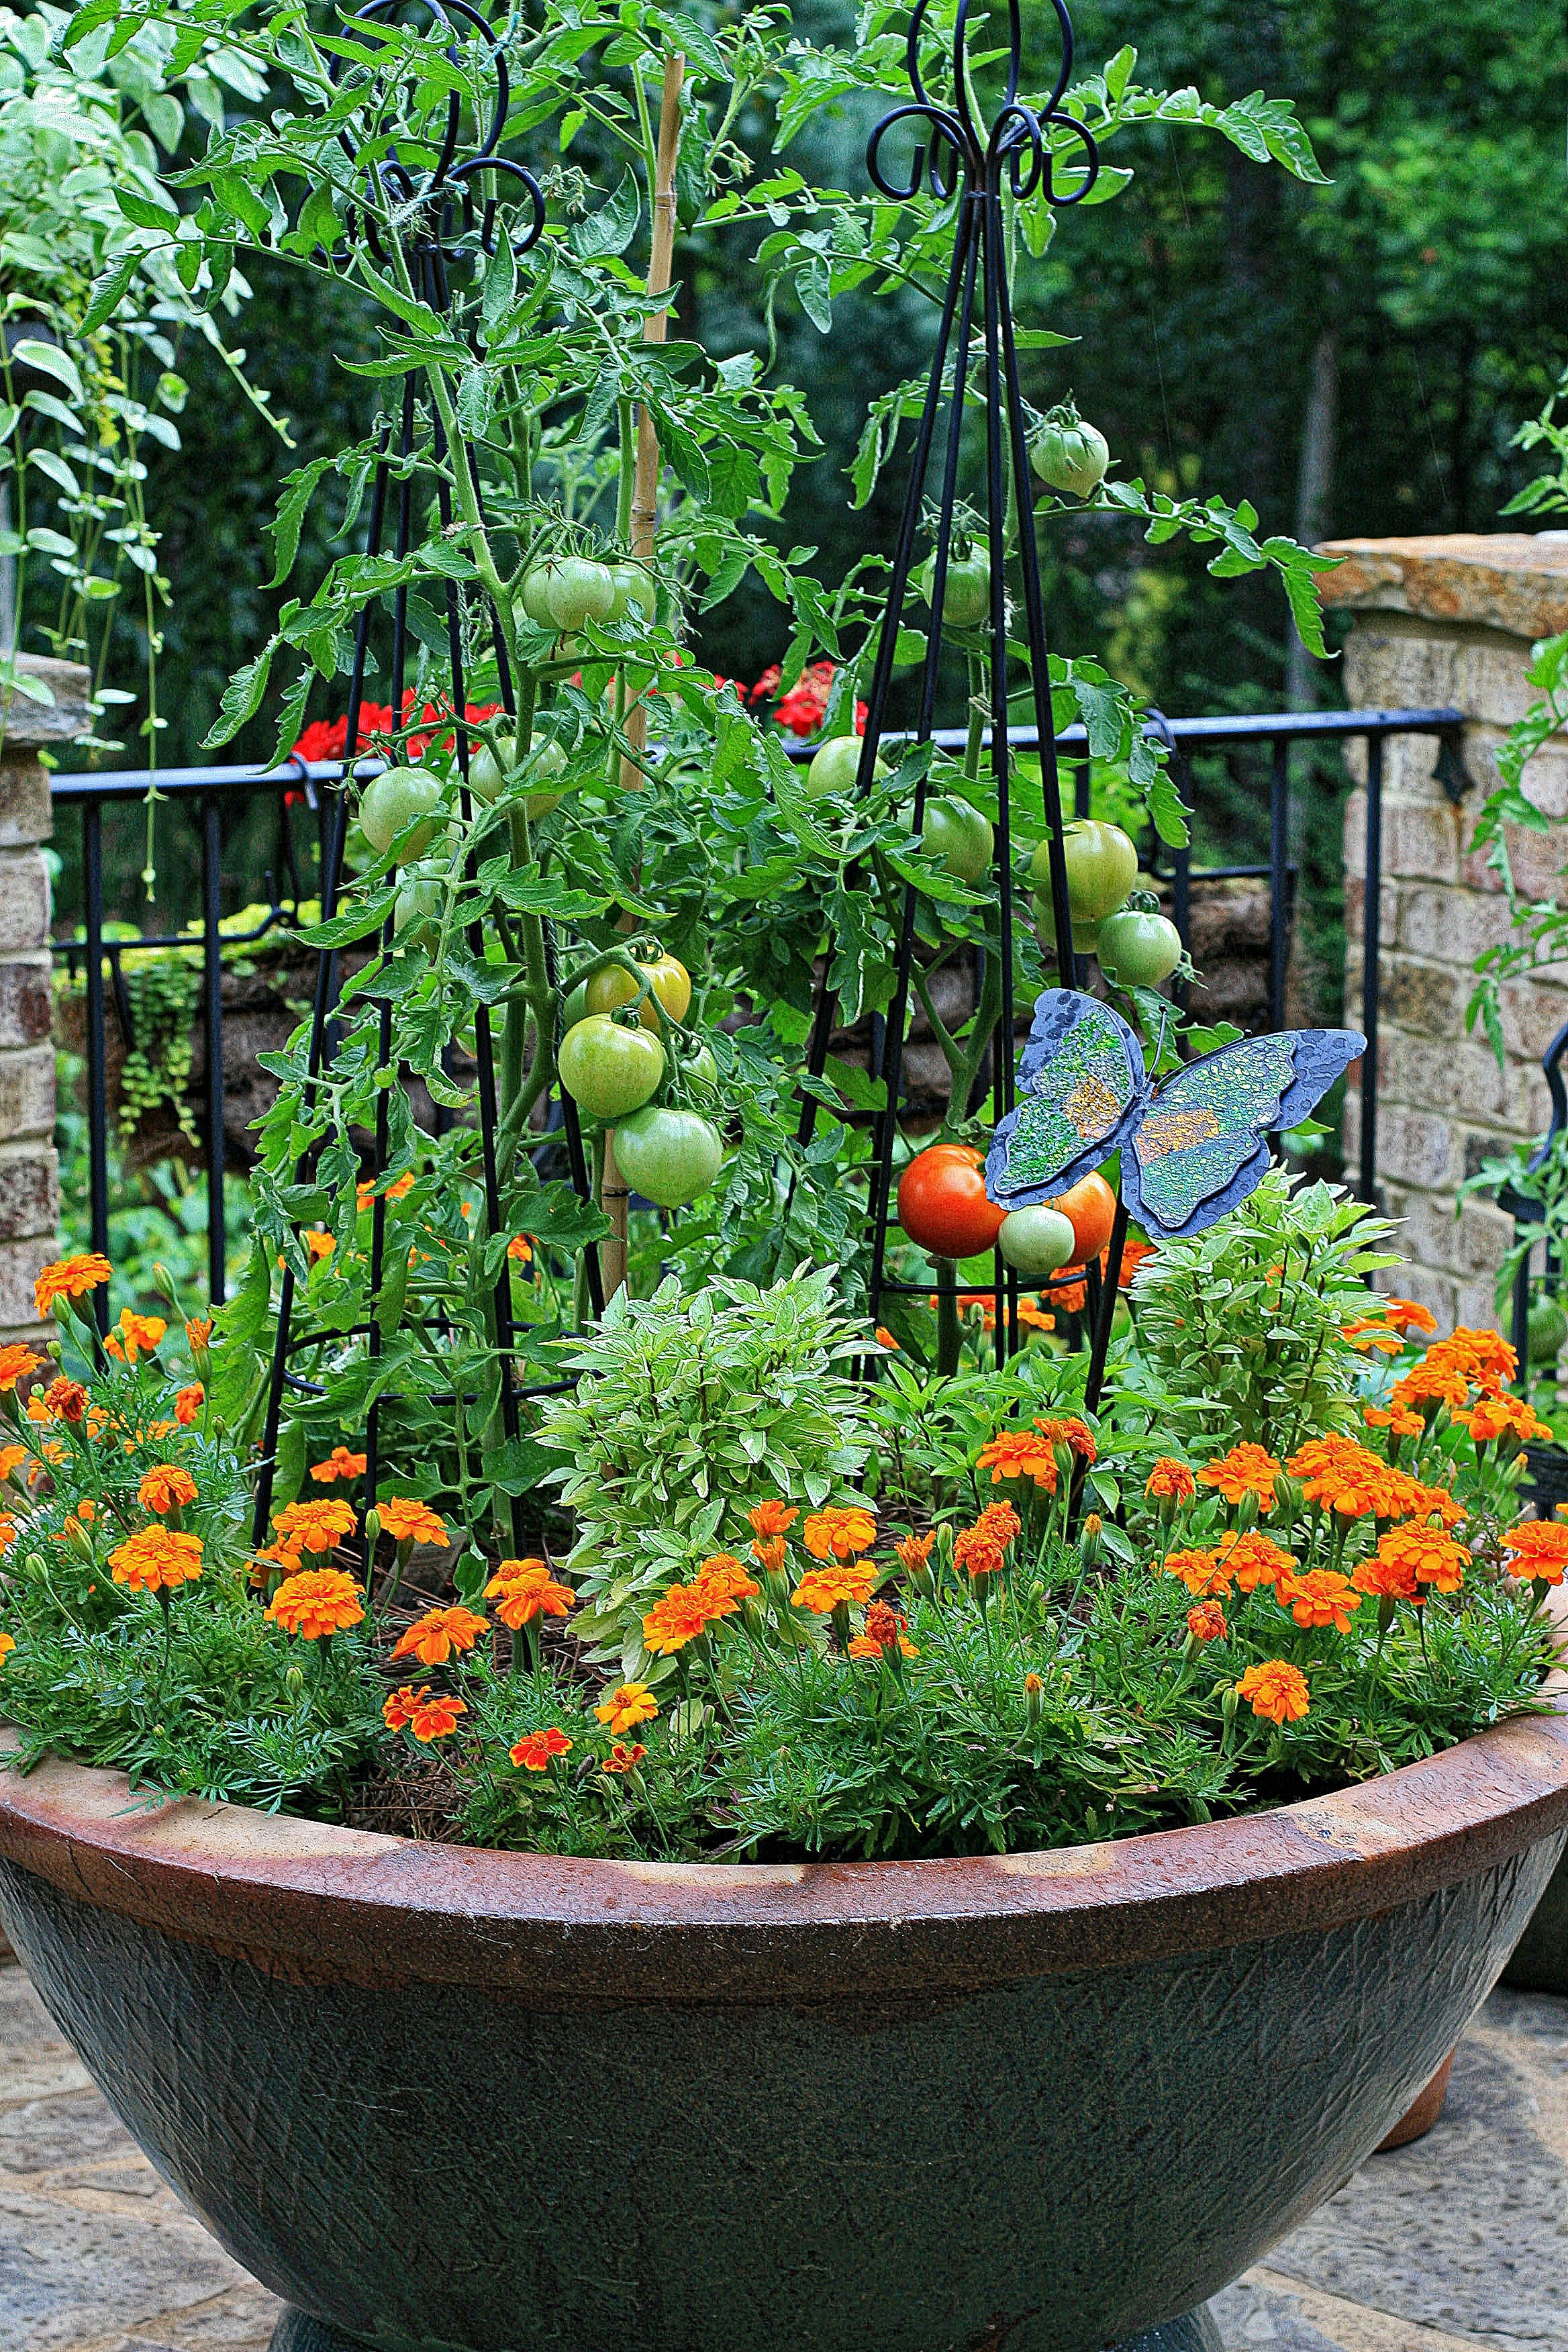 Patio Kitchen Harvests Are So Easy And Convenient. I Fill My Huge Round  Patio Container